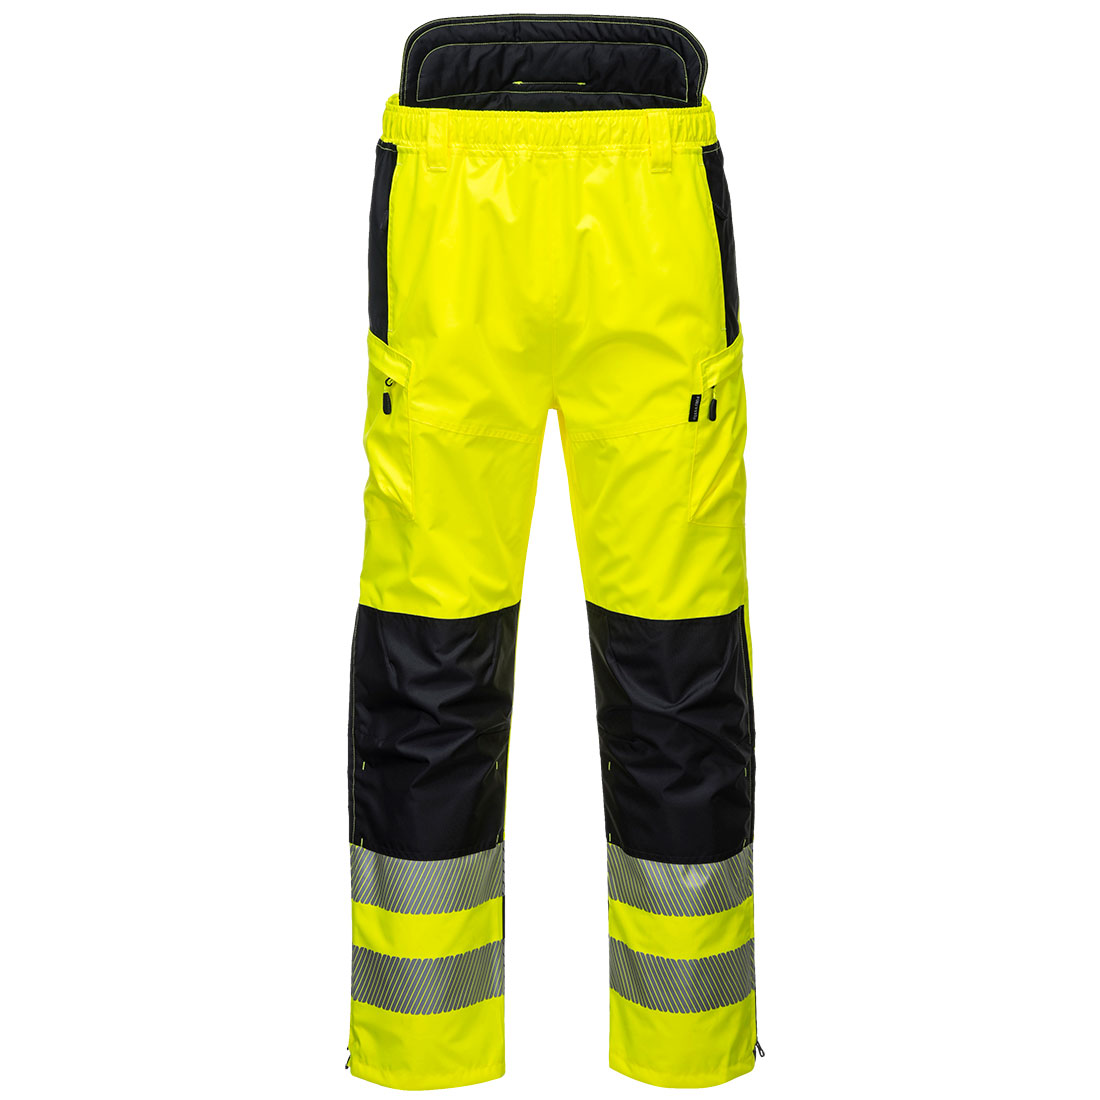 PW3 Hi-Vis Extreme Trouser Yellow/Black Small